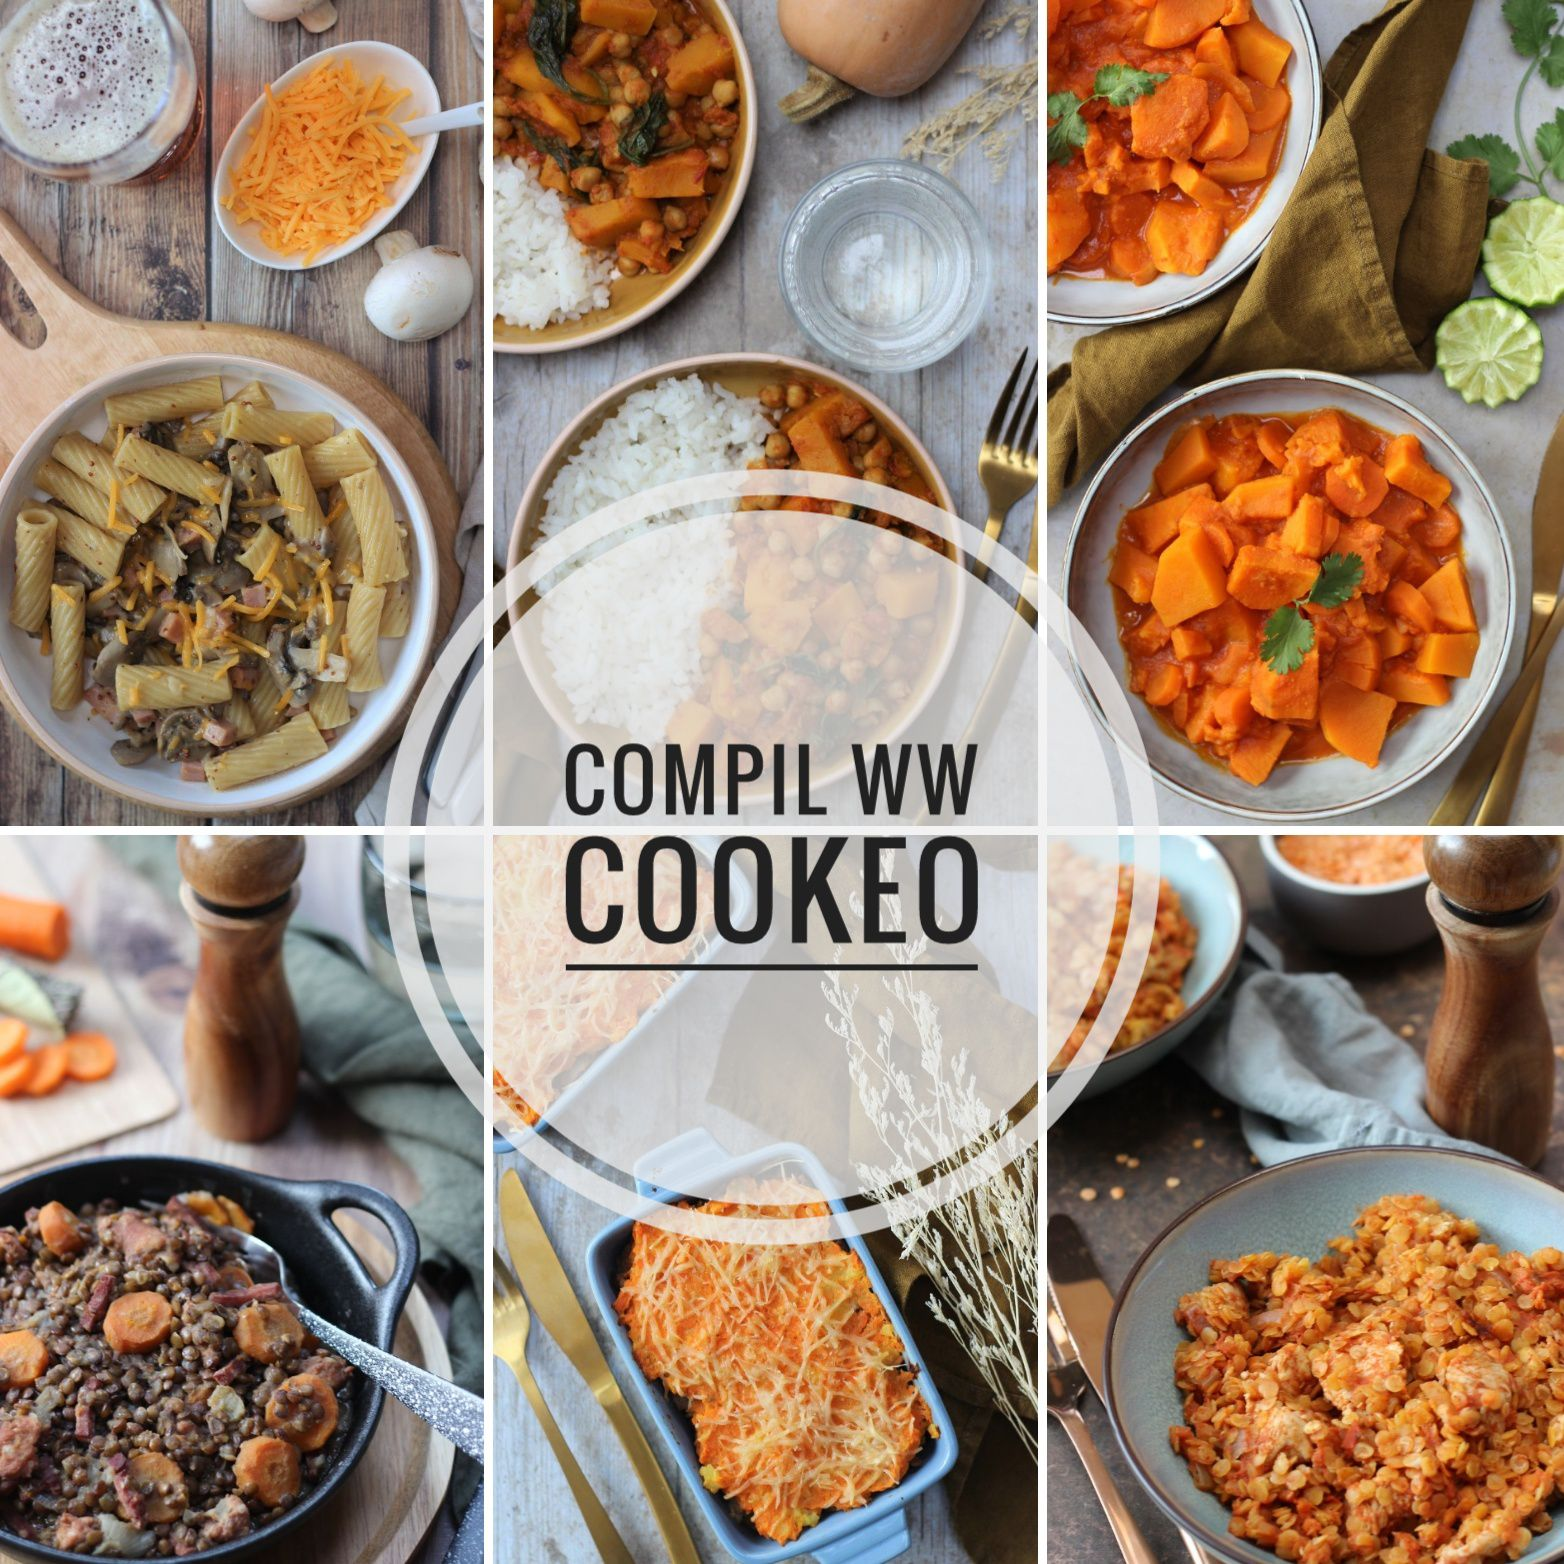 RECETTES COOKEO WW